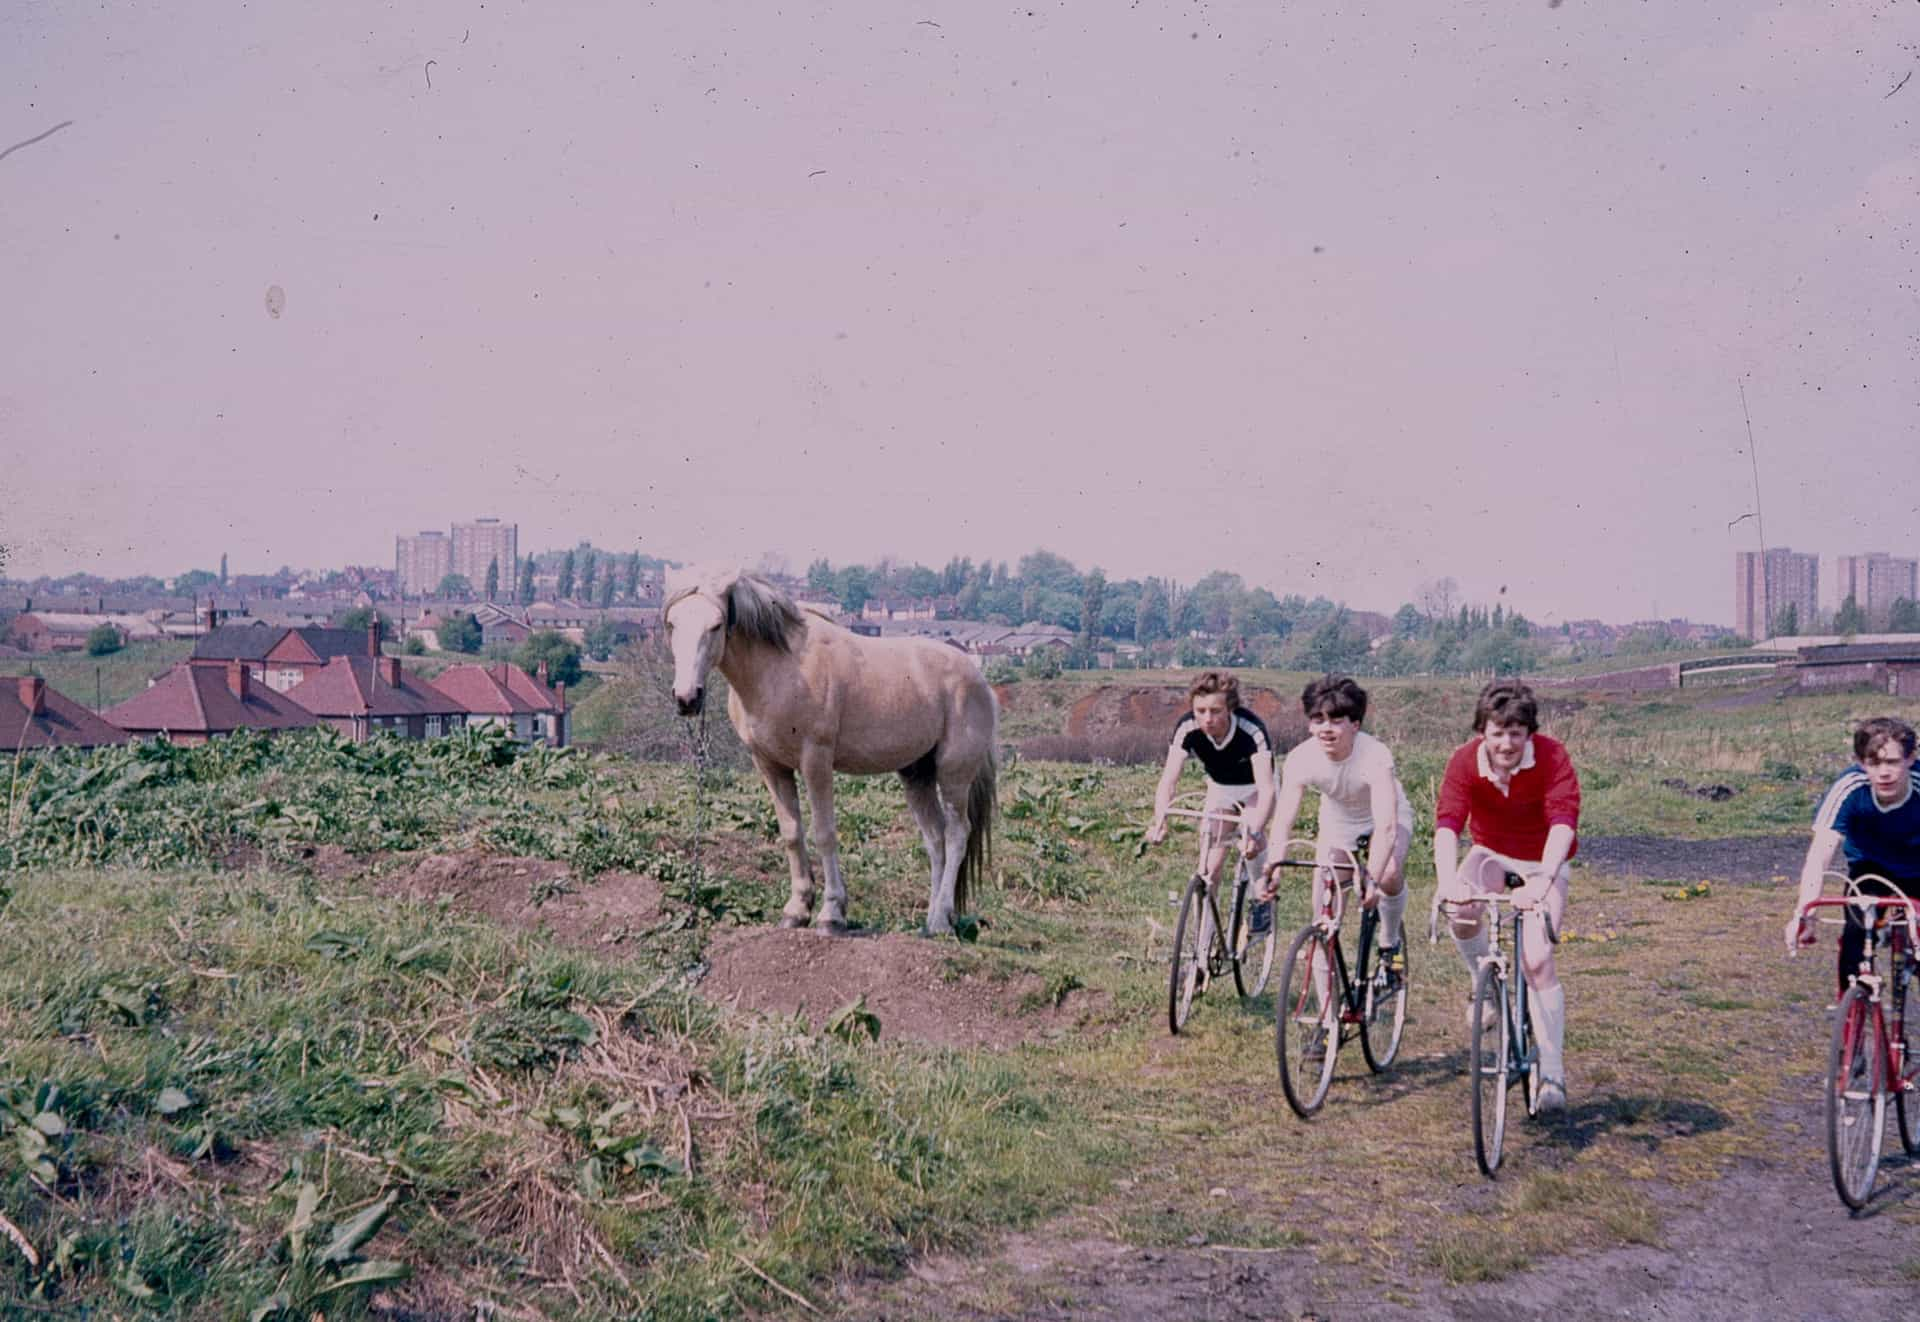 Boys out cycling, probably in Tipton. 1980s